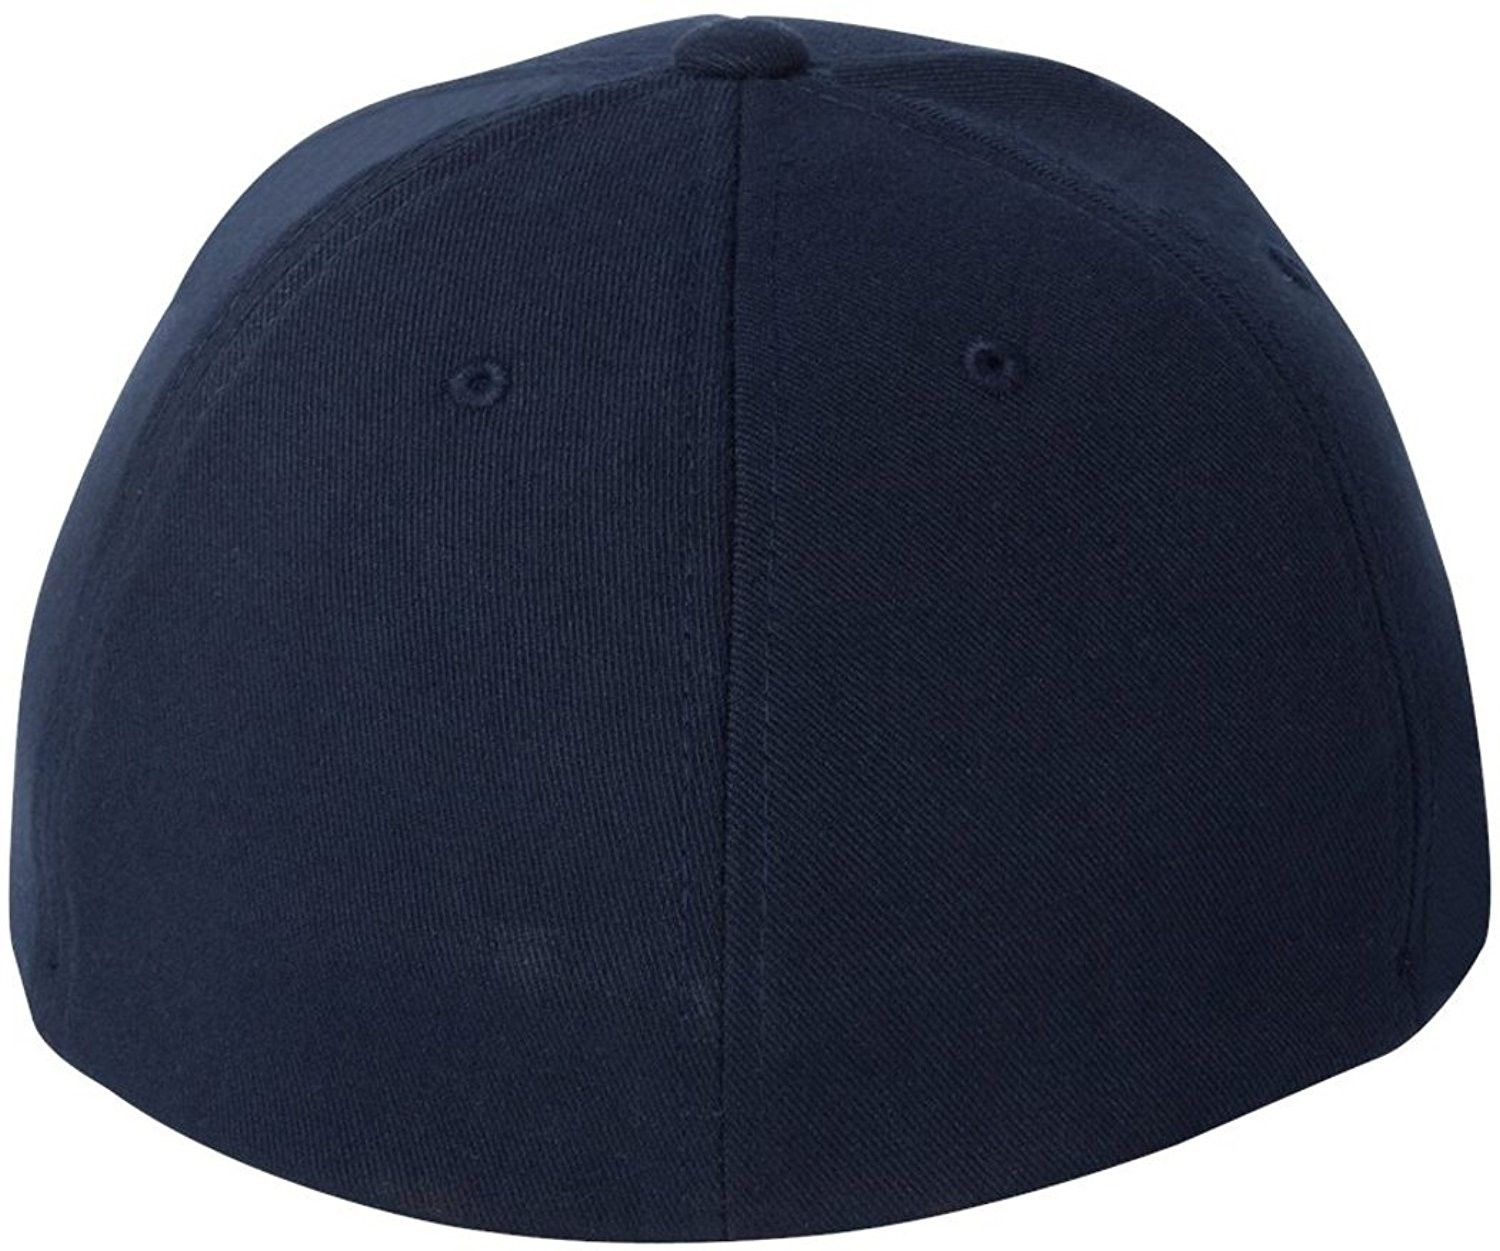 62fd9bb42d131e Hats & Caps, Men's Hats & Caps, Baseball Caps, Yupoong Performance Wool - Dark  Navy - C311664NGPH #caps #men #hats #mensoutfits #style #Baseball Capshats